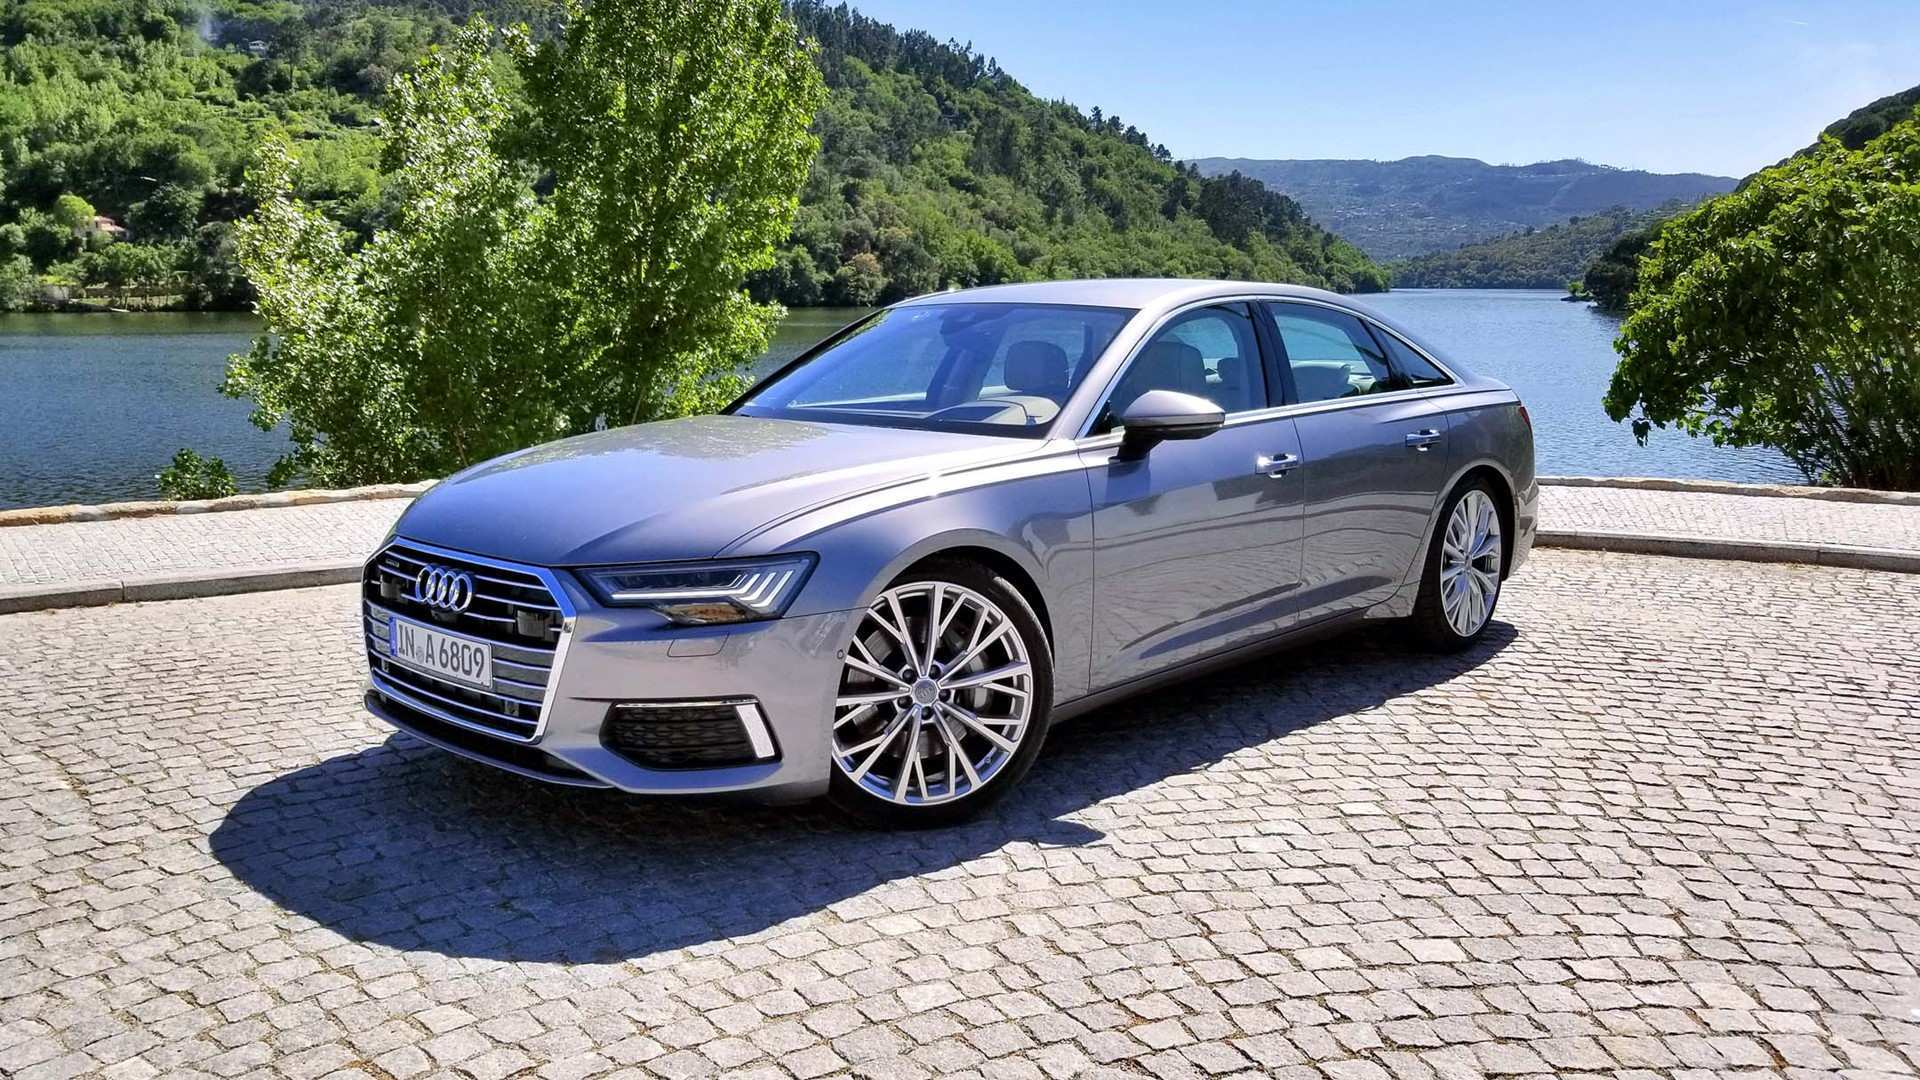 57 A 2019 The Audi A6 Release Date And Concept